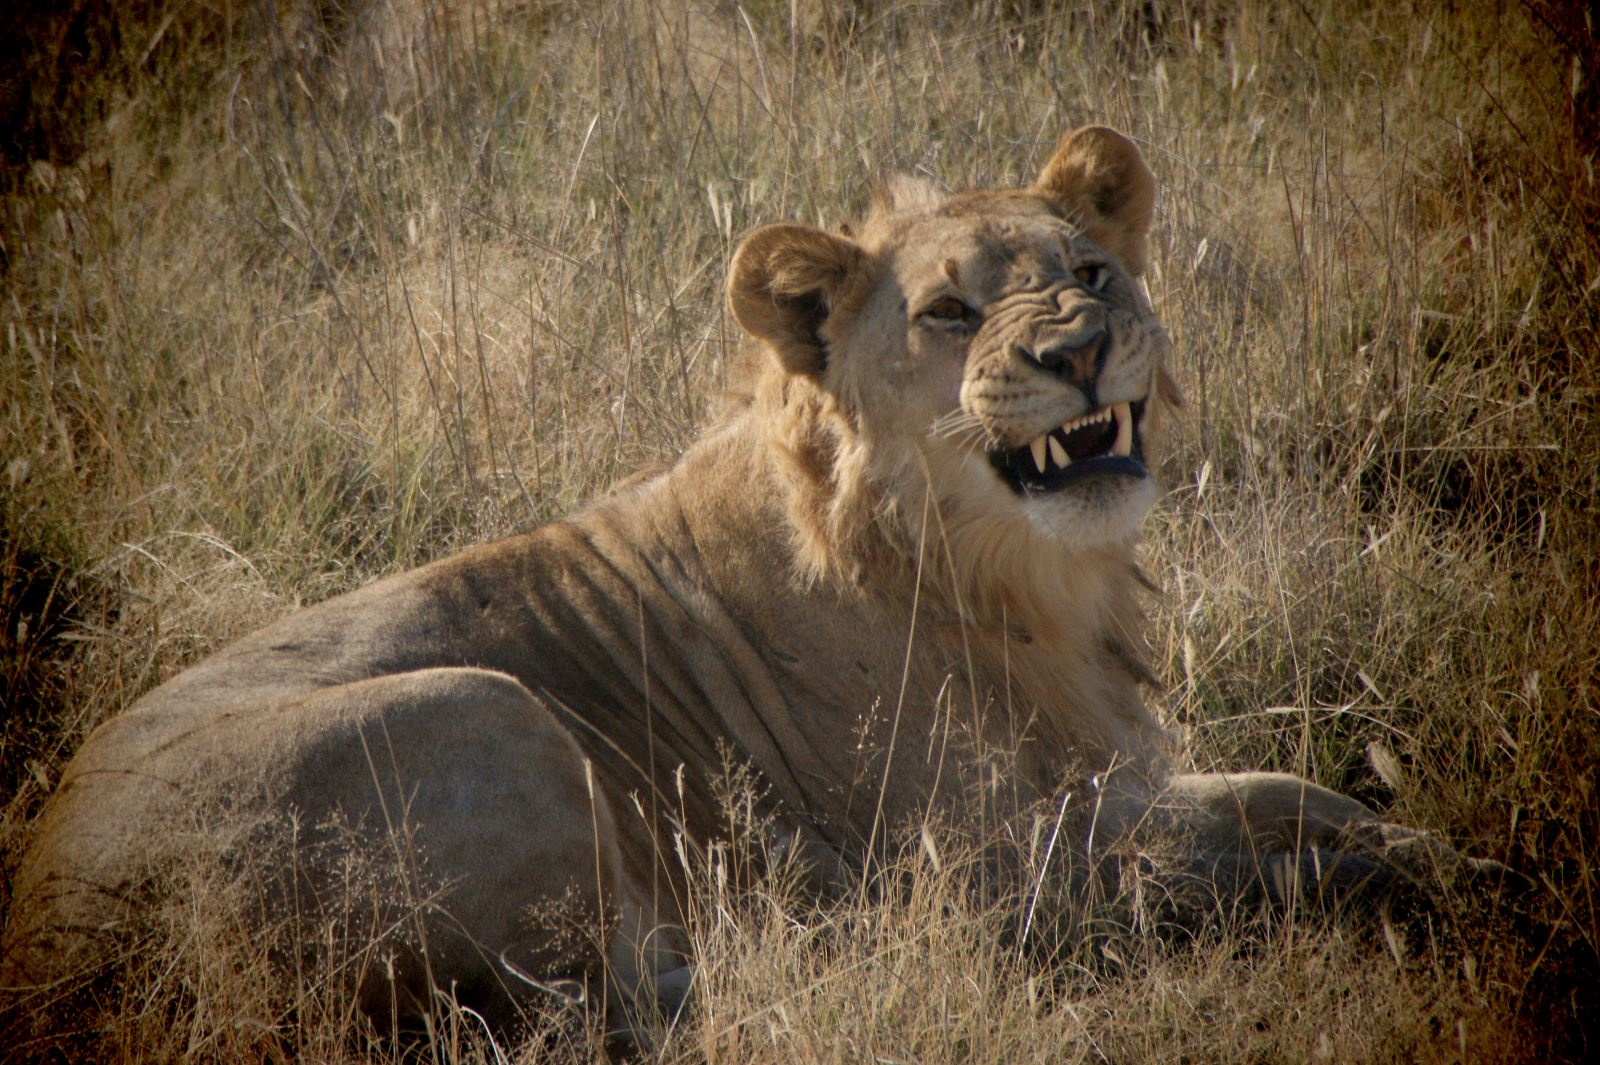 Safari and Lion Encounter at Etosha National Park, Namibia